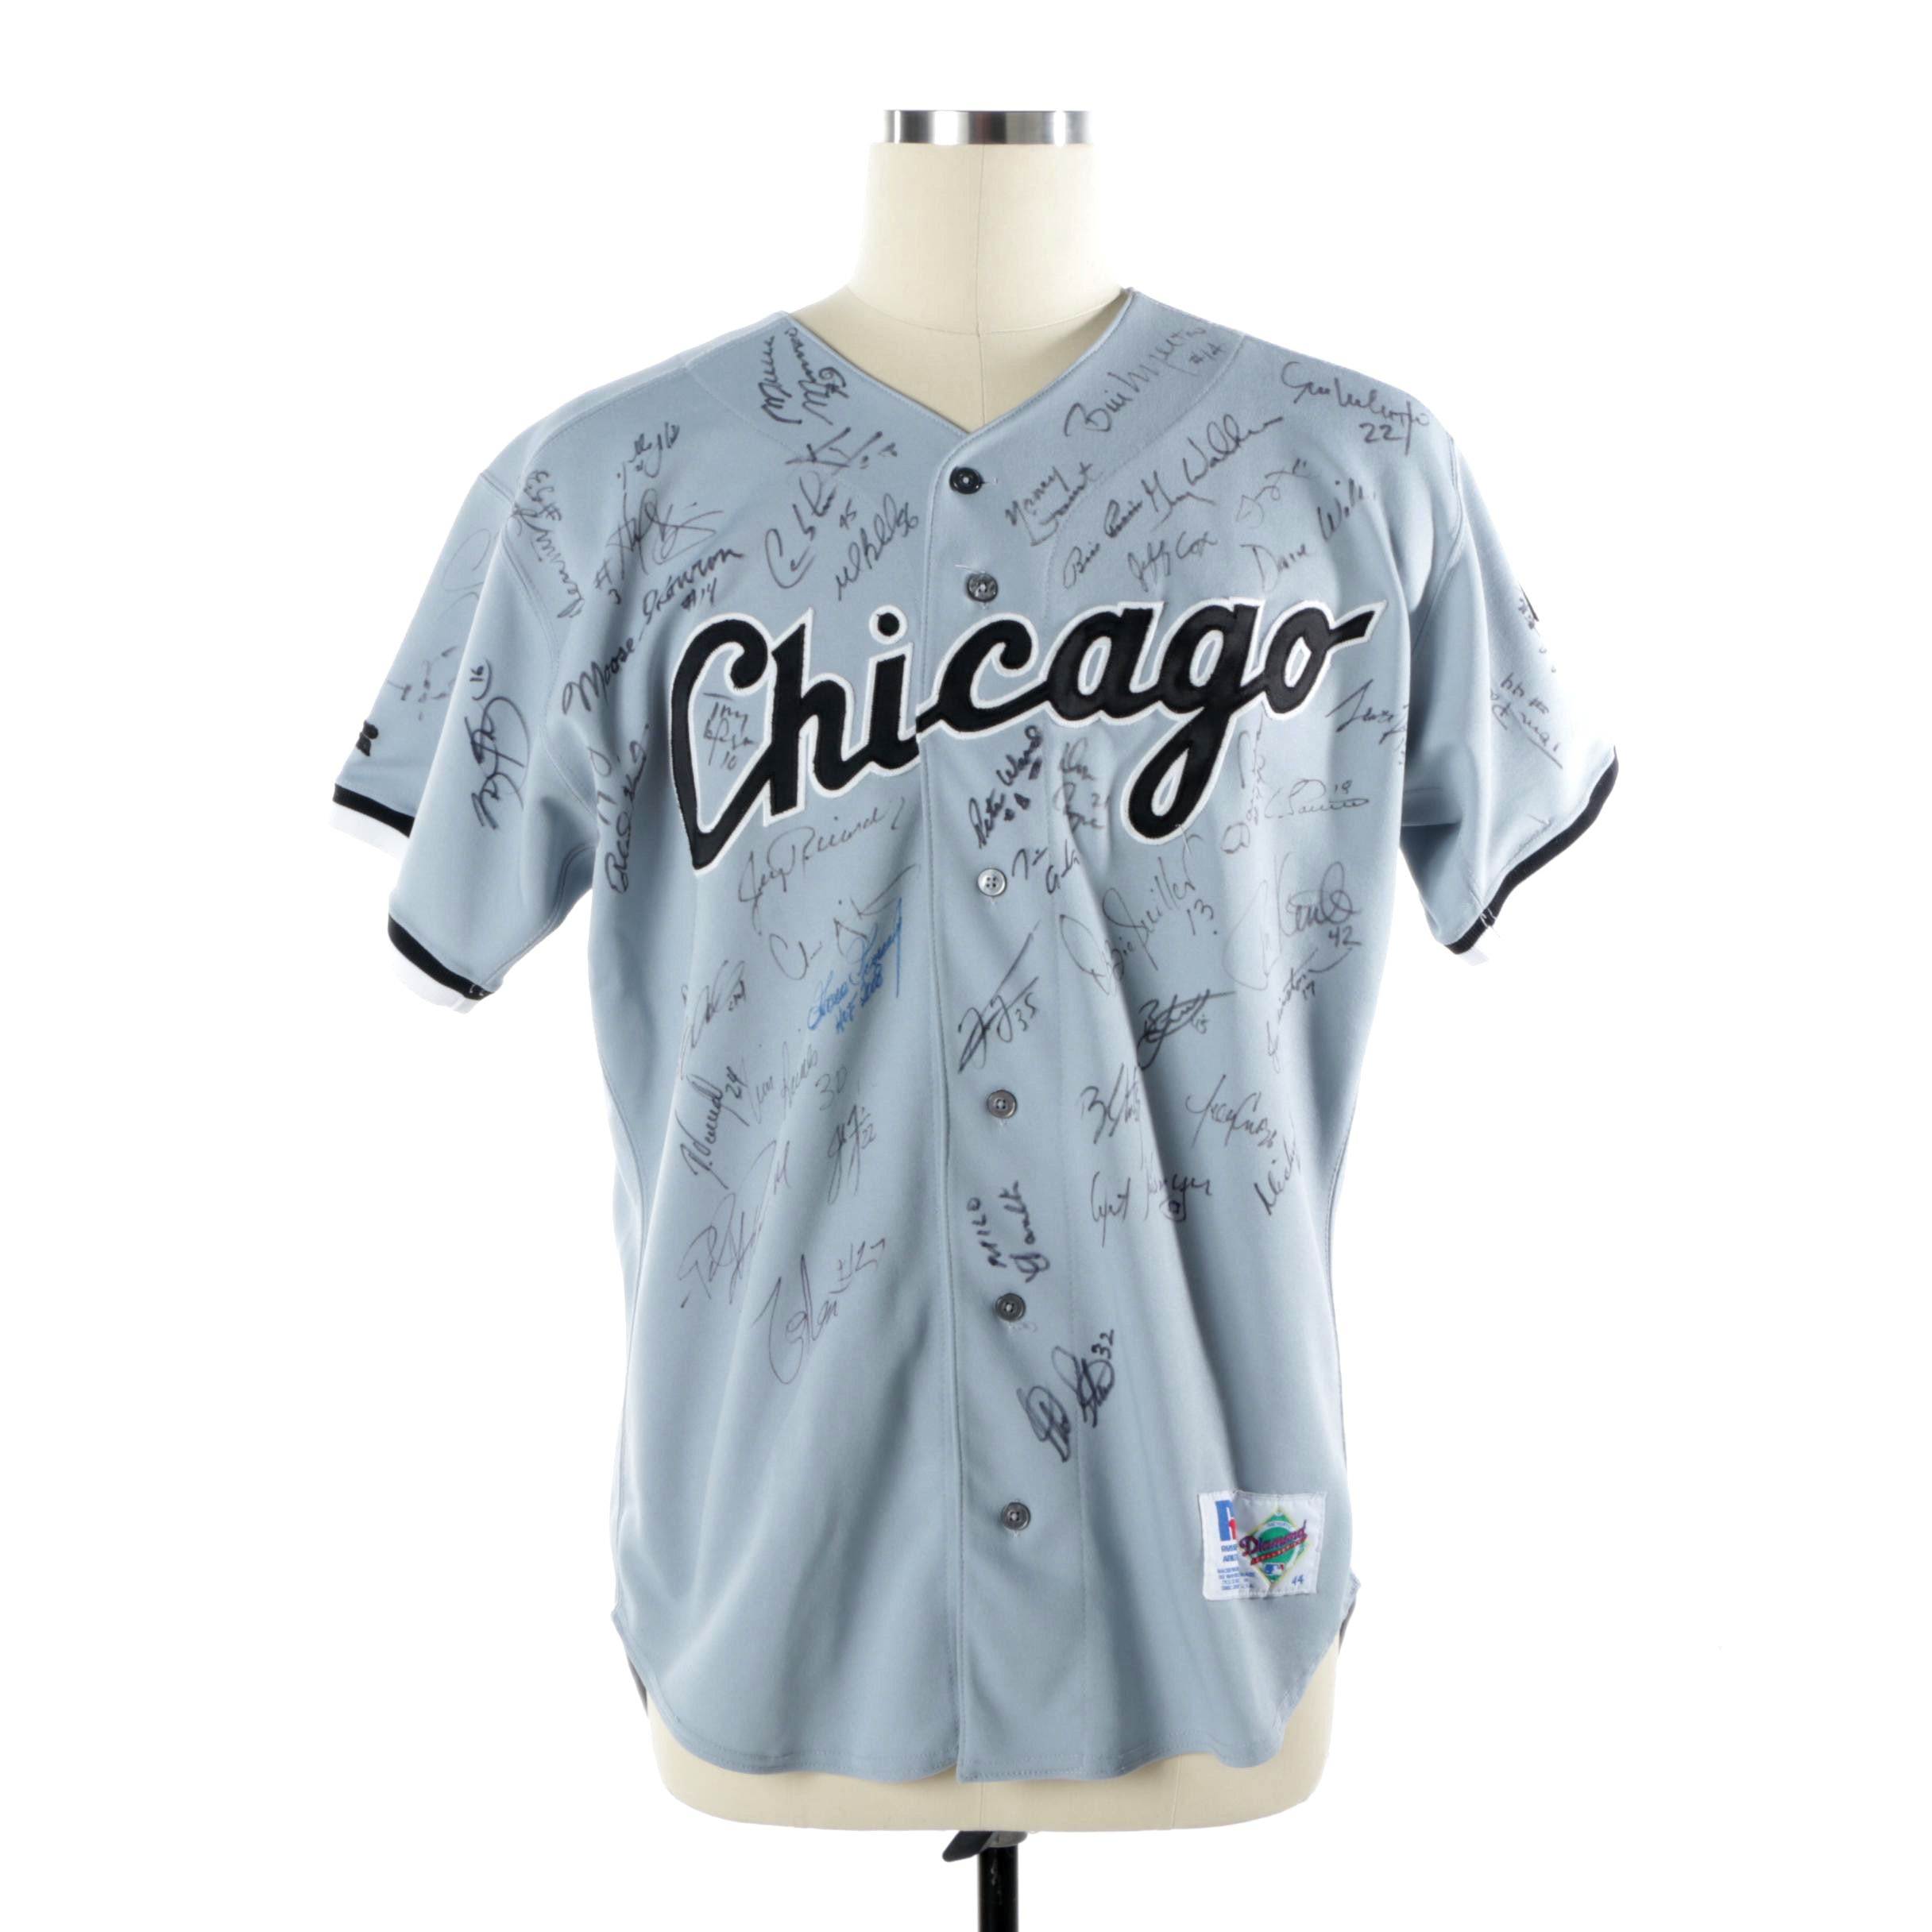 Chicago White Sox Autographed Jersey